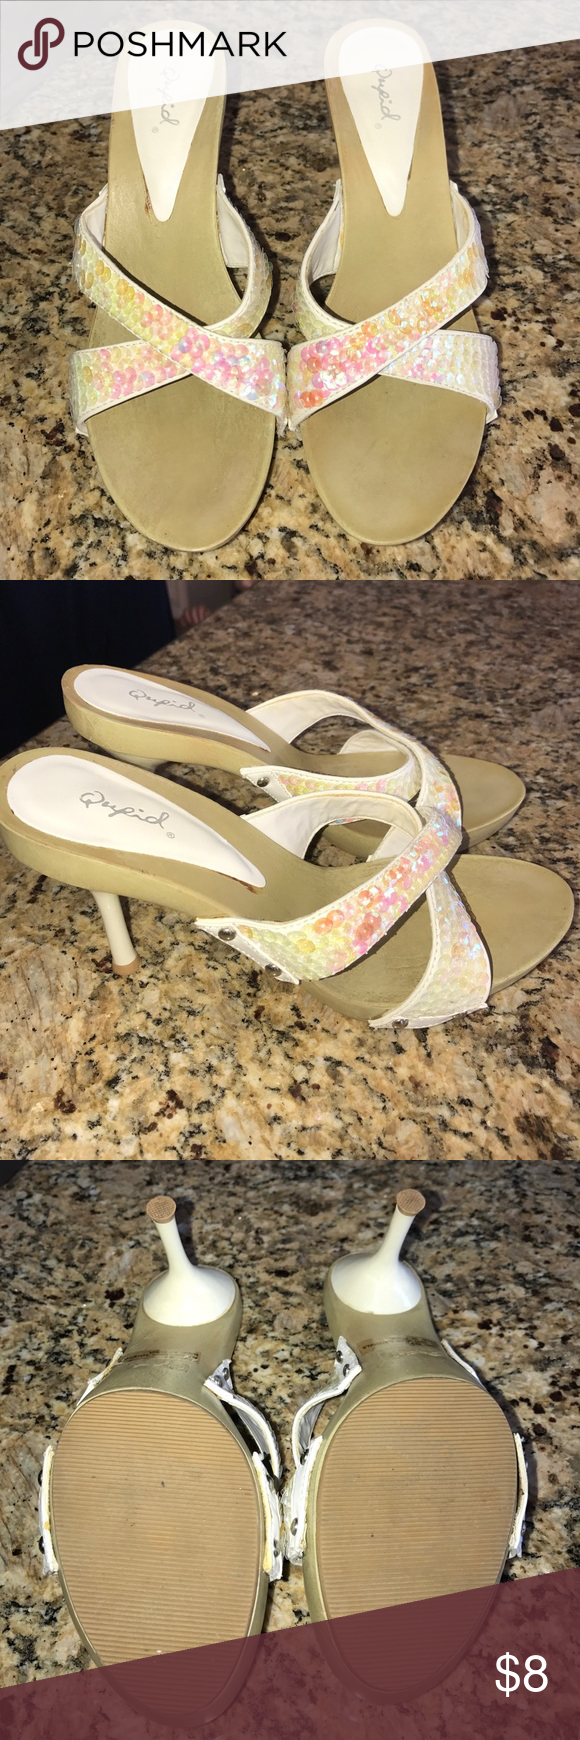 """Sequin Sandals Pink And White Metallic Sequin Sandals. Sole Is A Faux Wood. Slightly Worn. Heel Is Around 4"""" High. Qupid Shoes Sandals"""